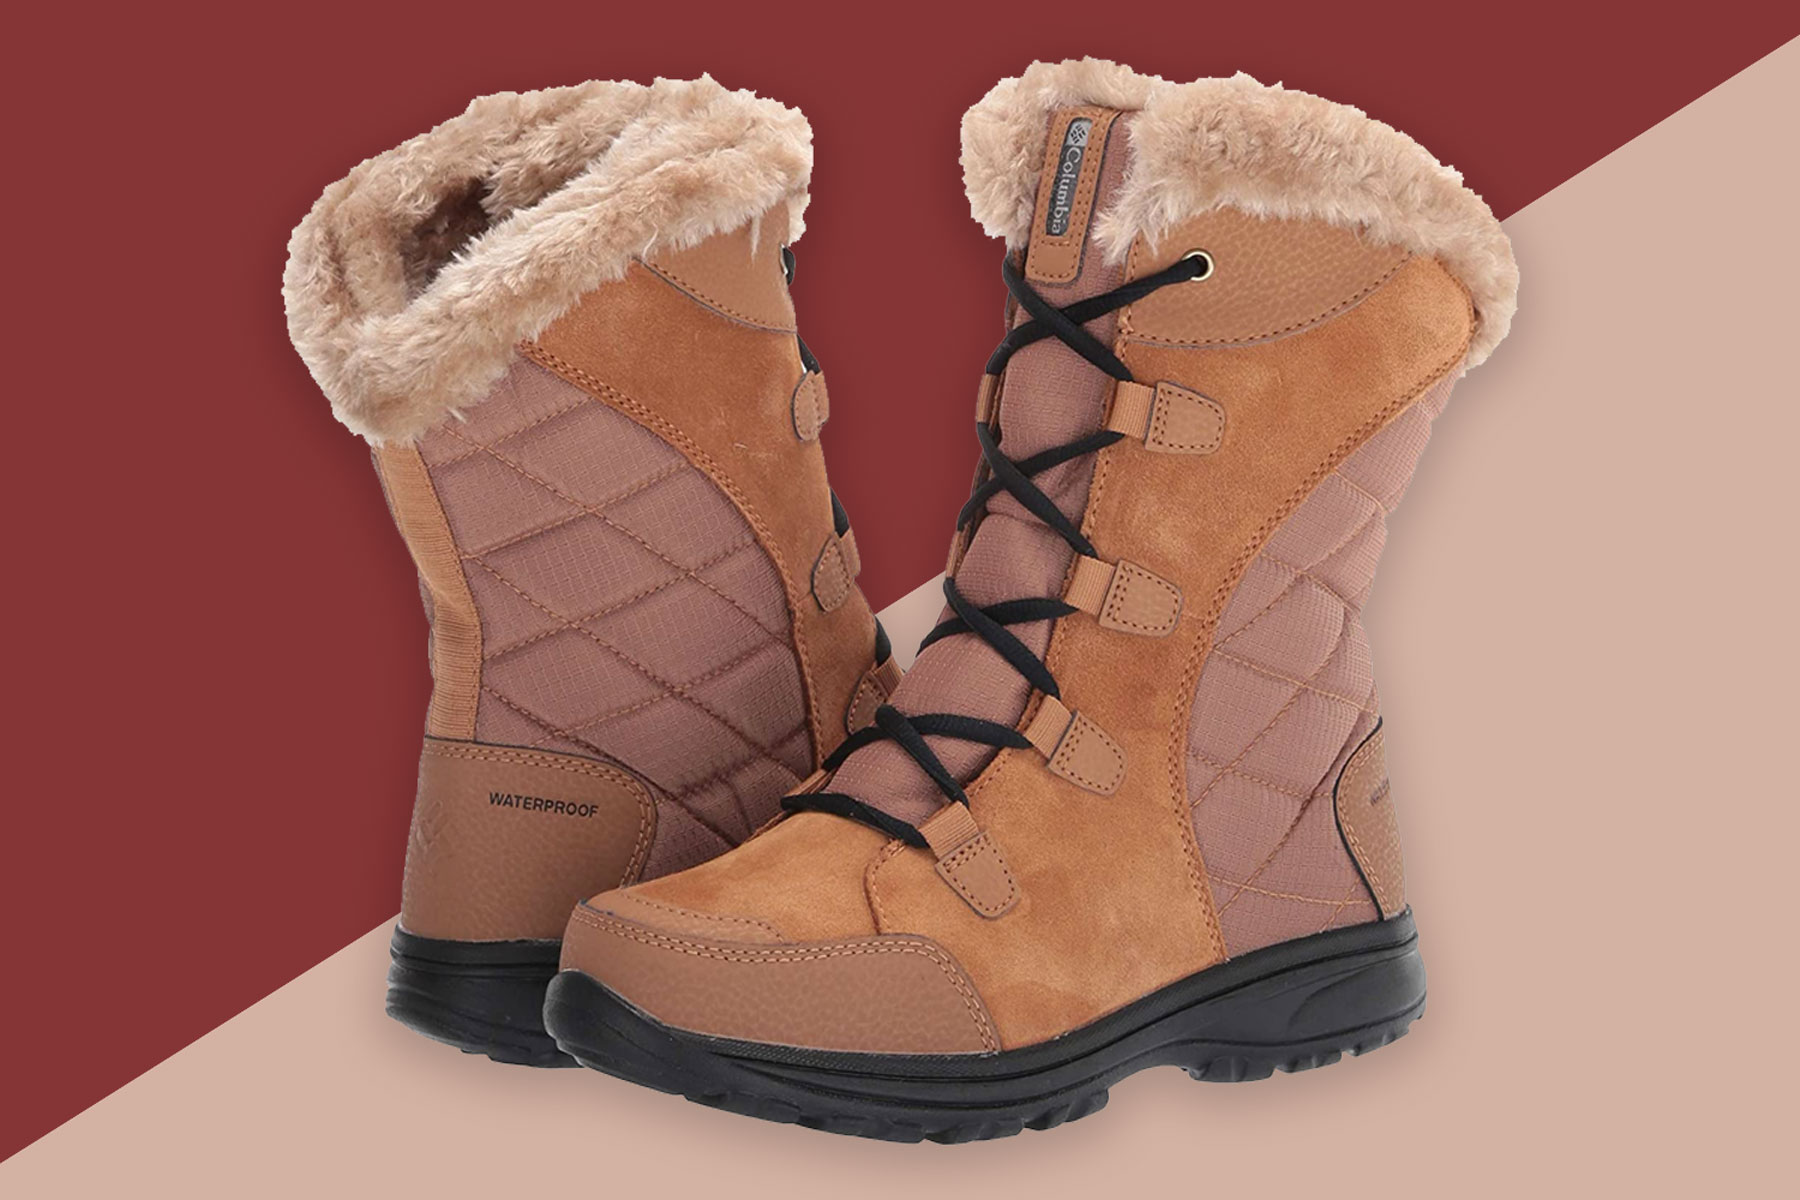 Chestnut suede and quilted snow boots